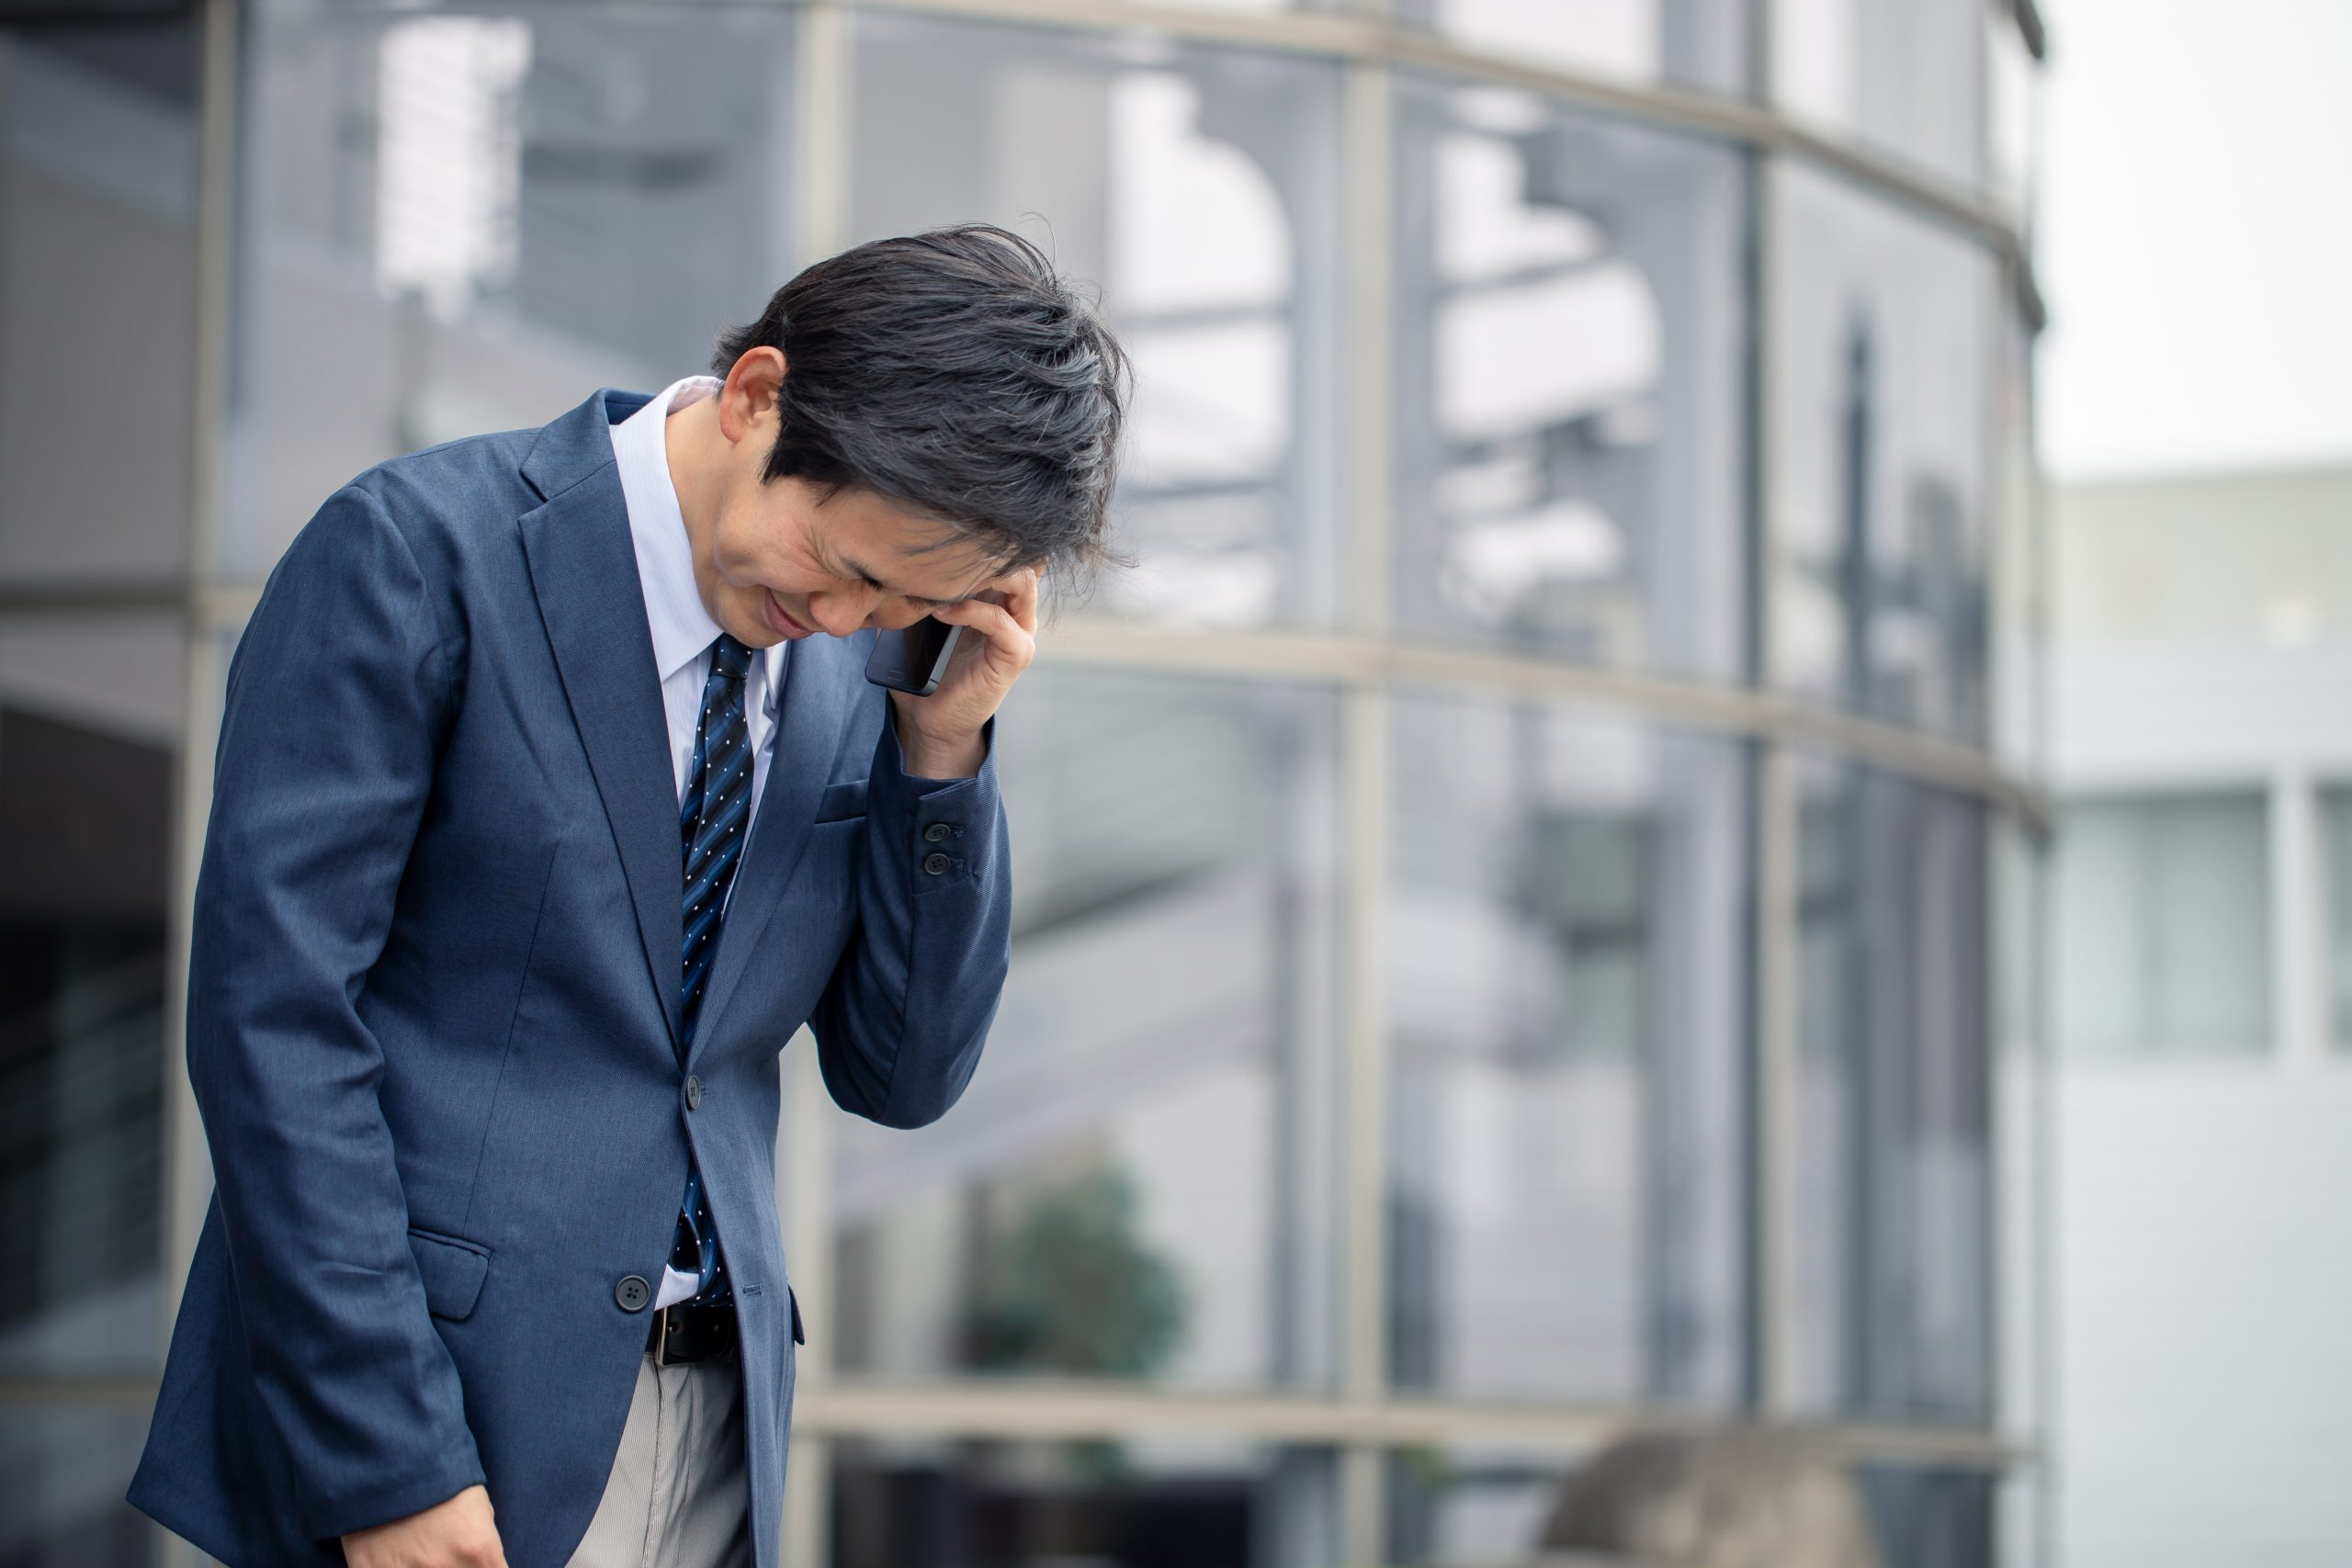 Japanese man in a suit apologizing over a phone